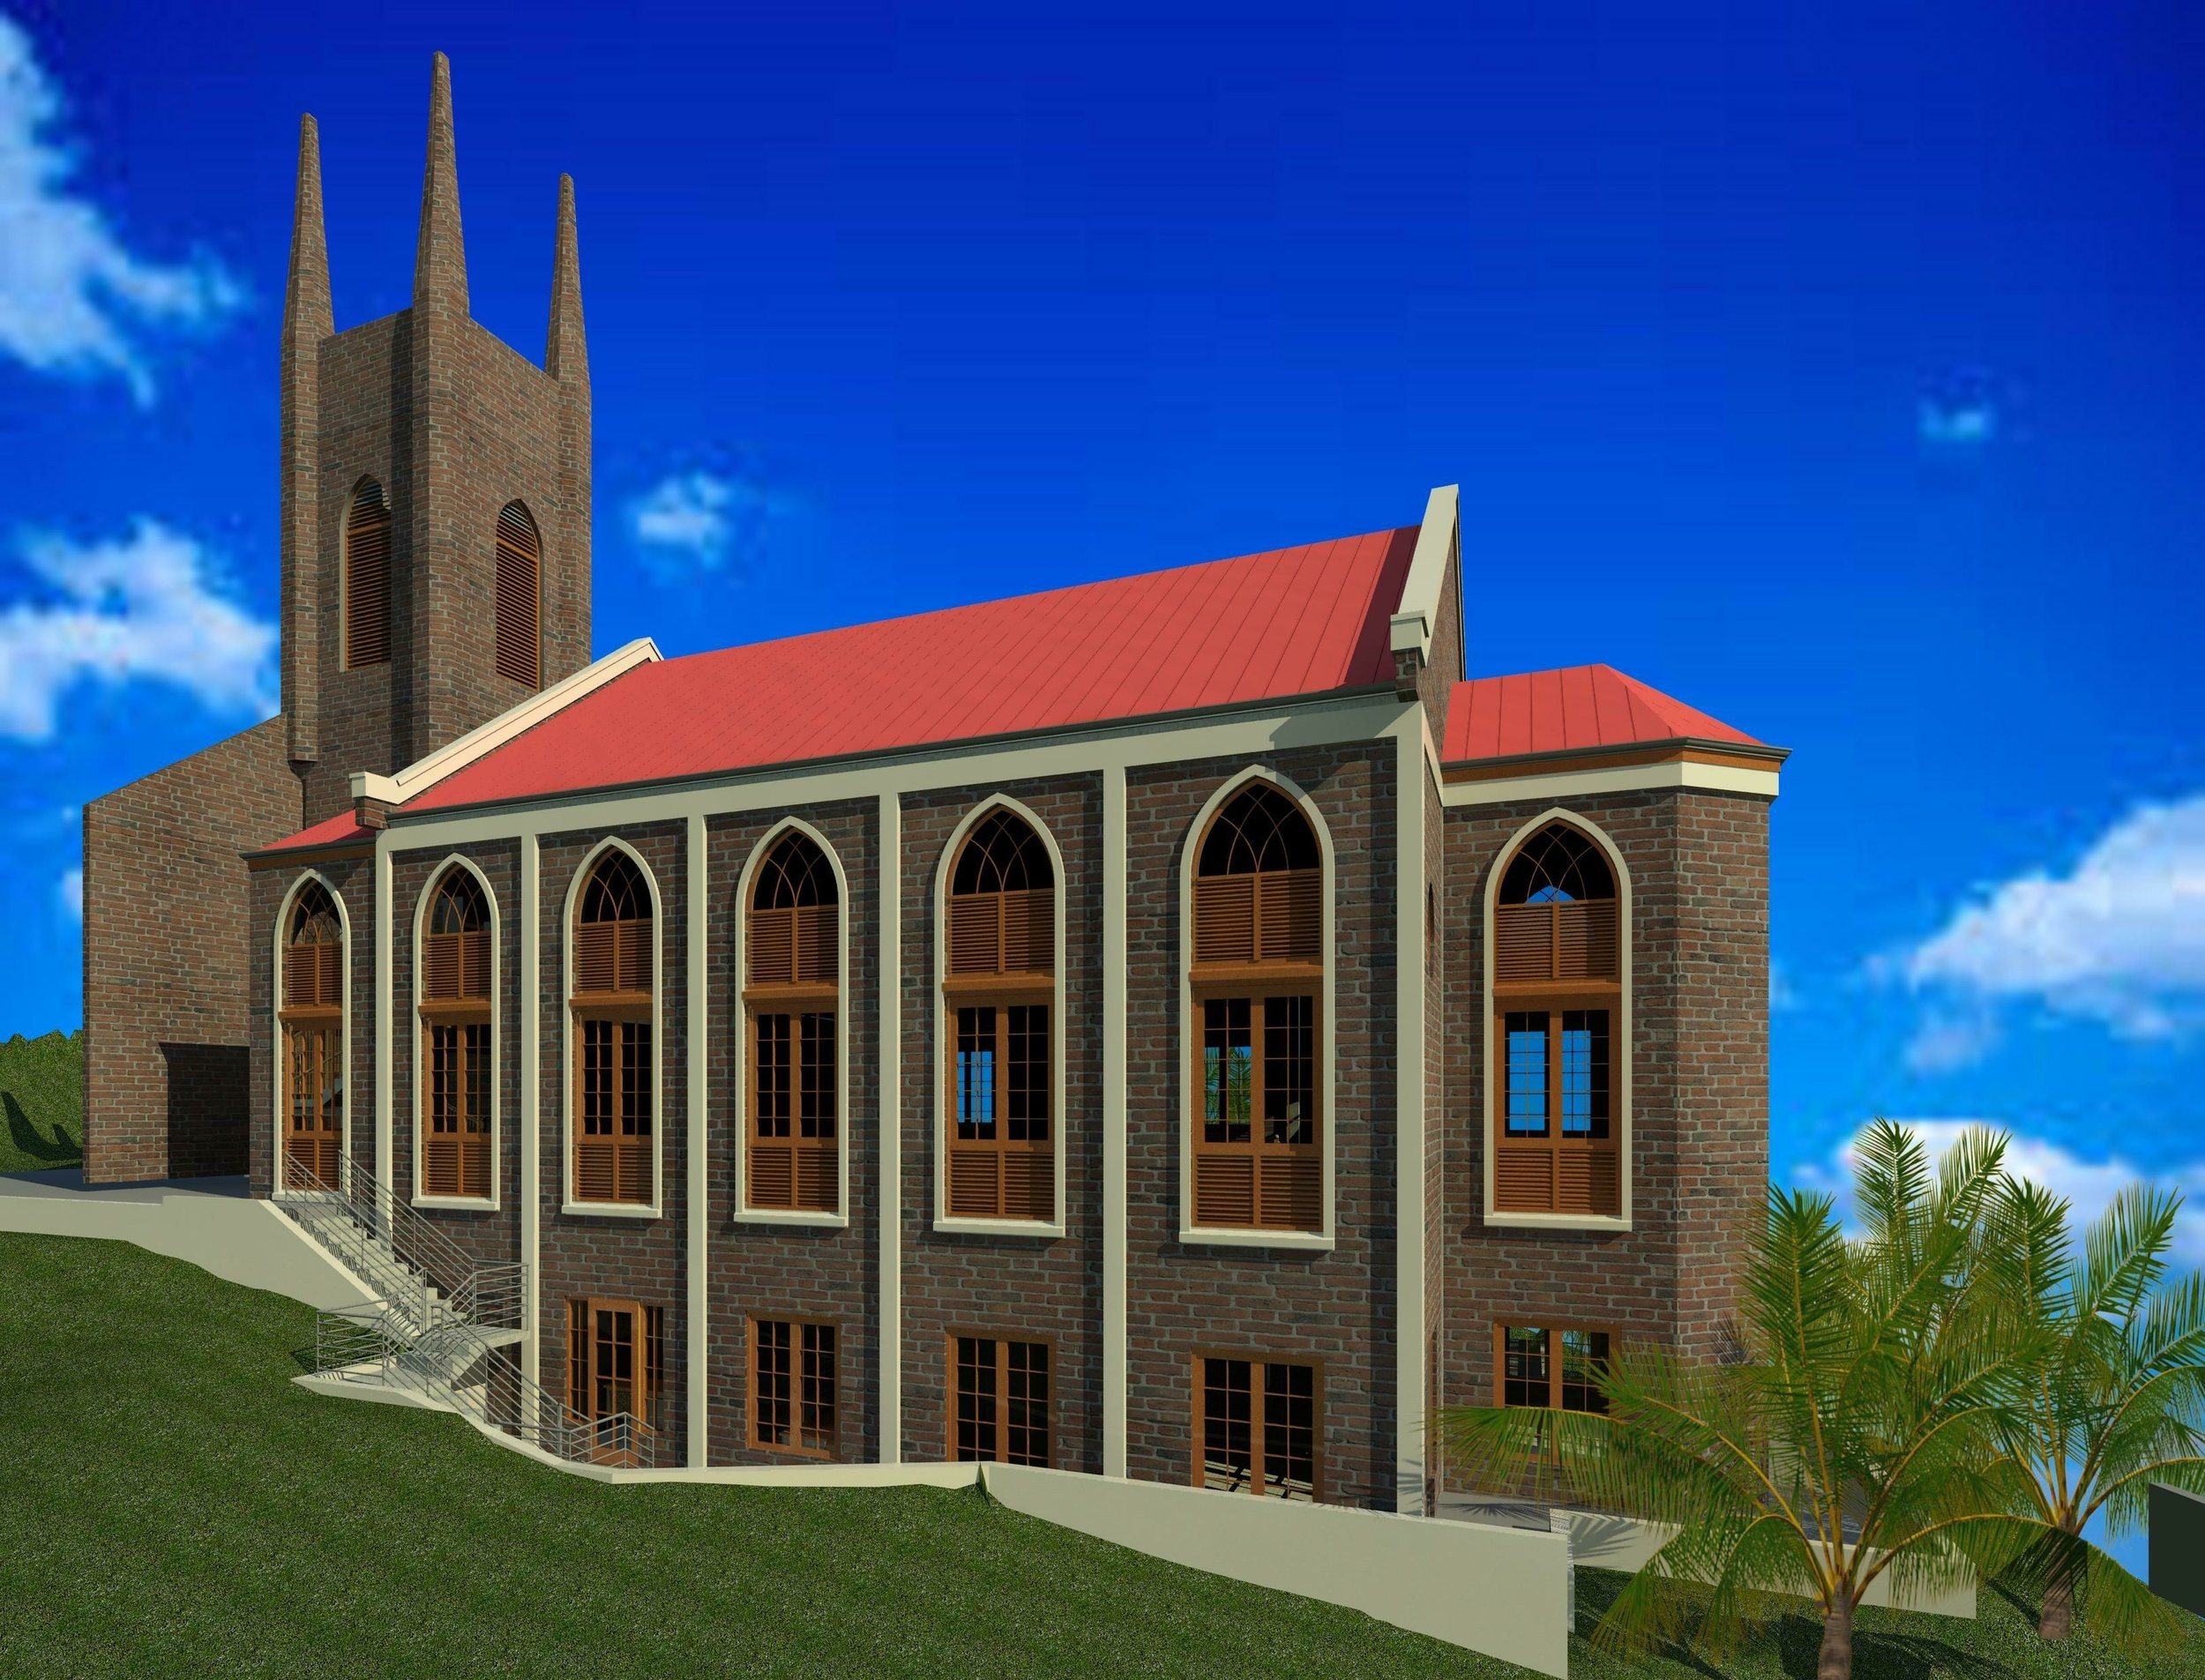 New Concept Eastern Elevation.jpg